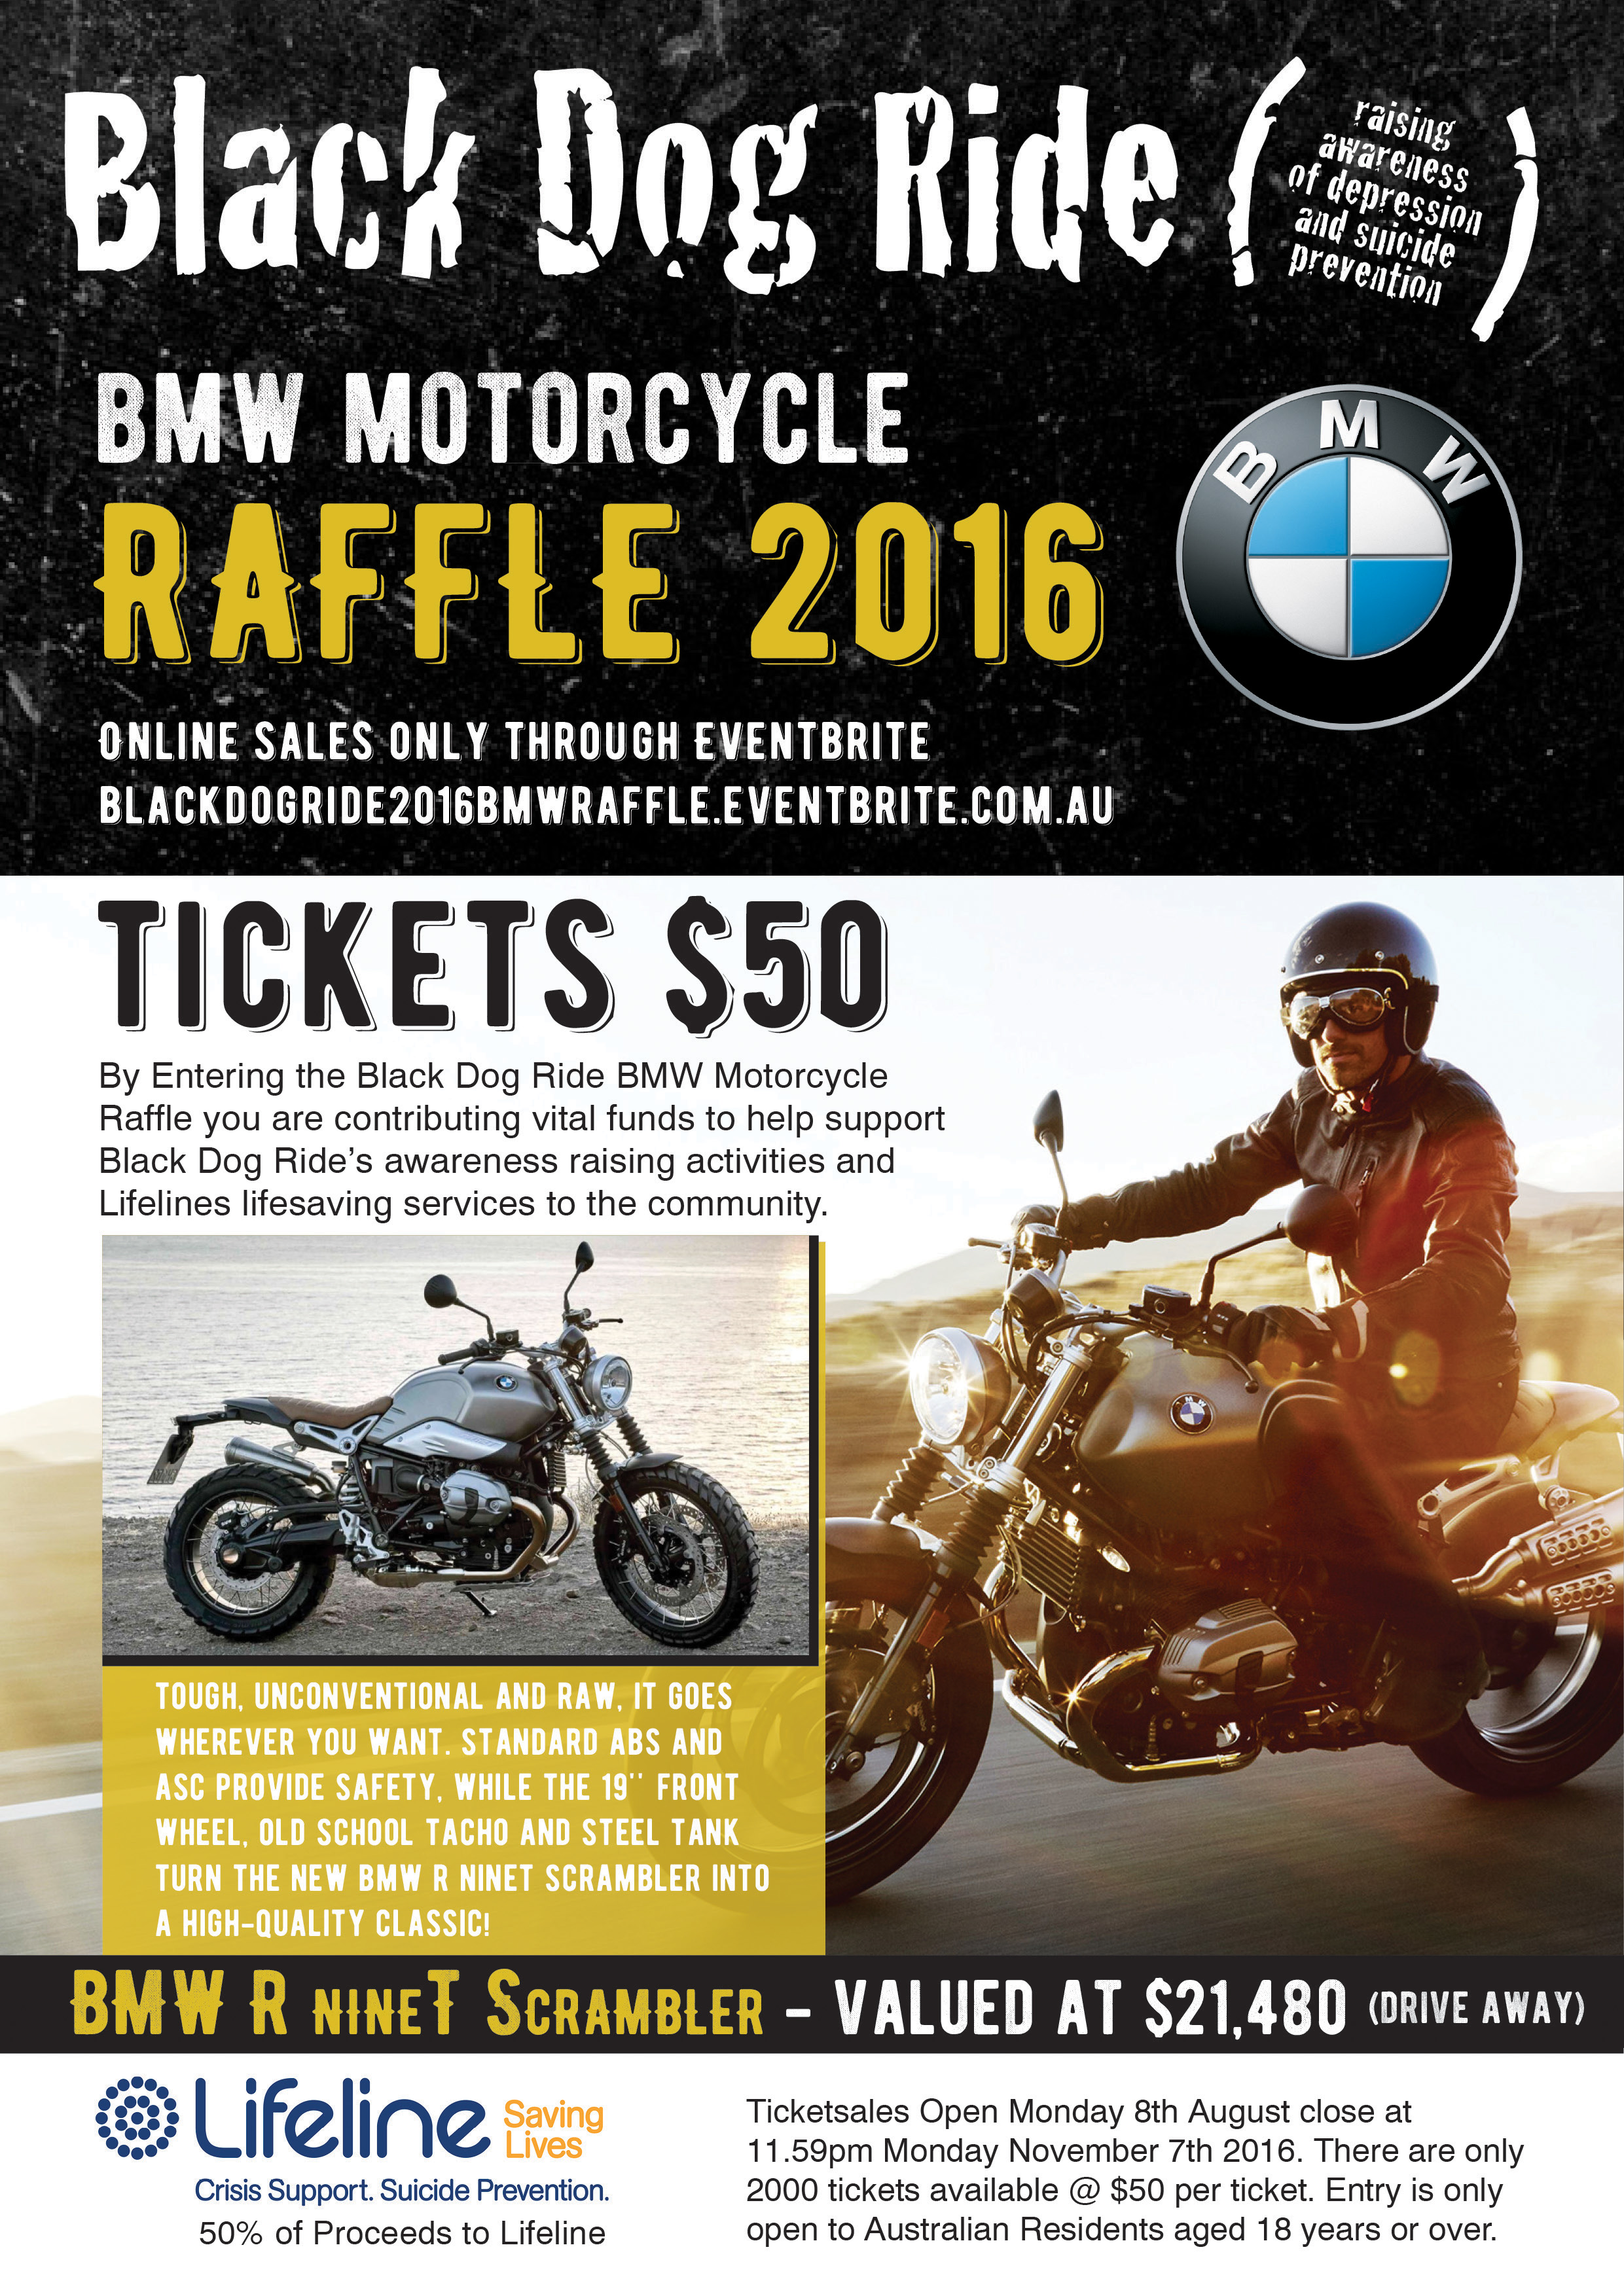 Win a BMW R nineT Scrambler and support Black Dog Ride.